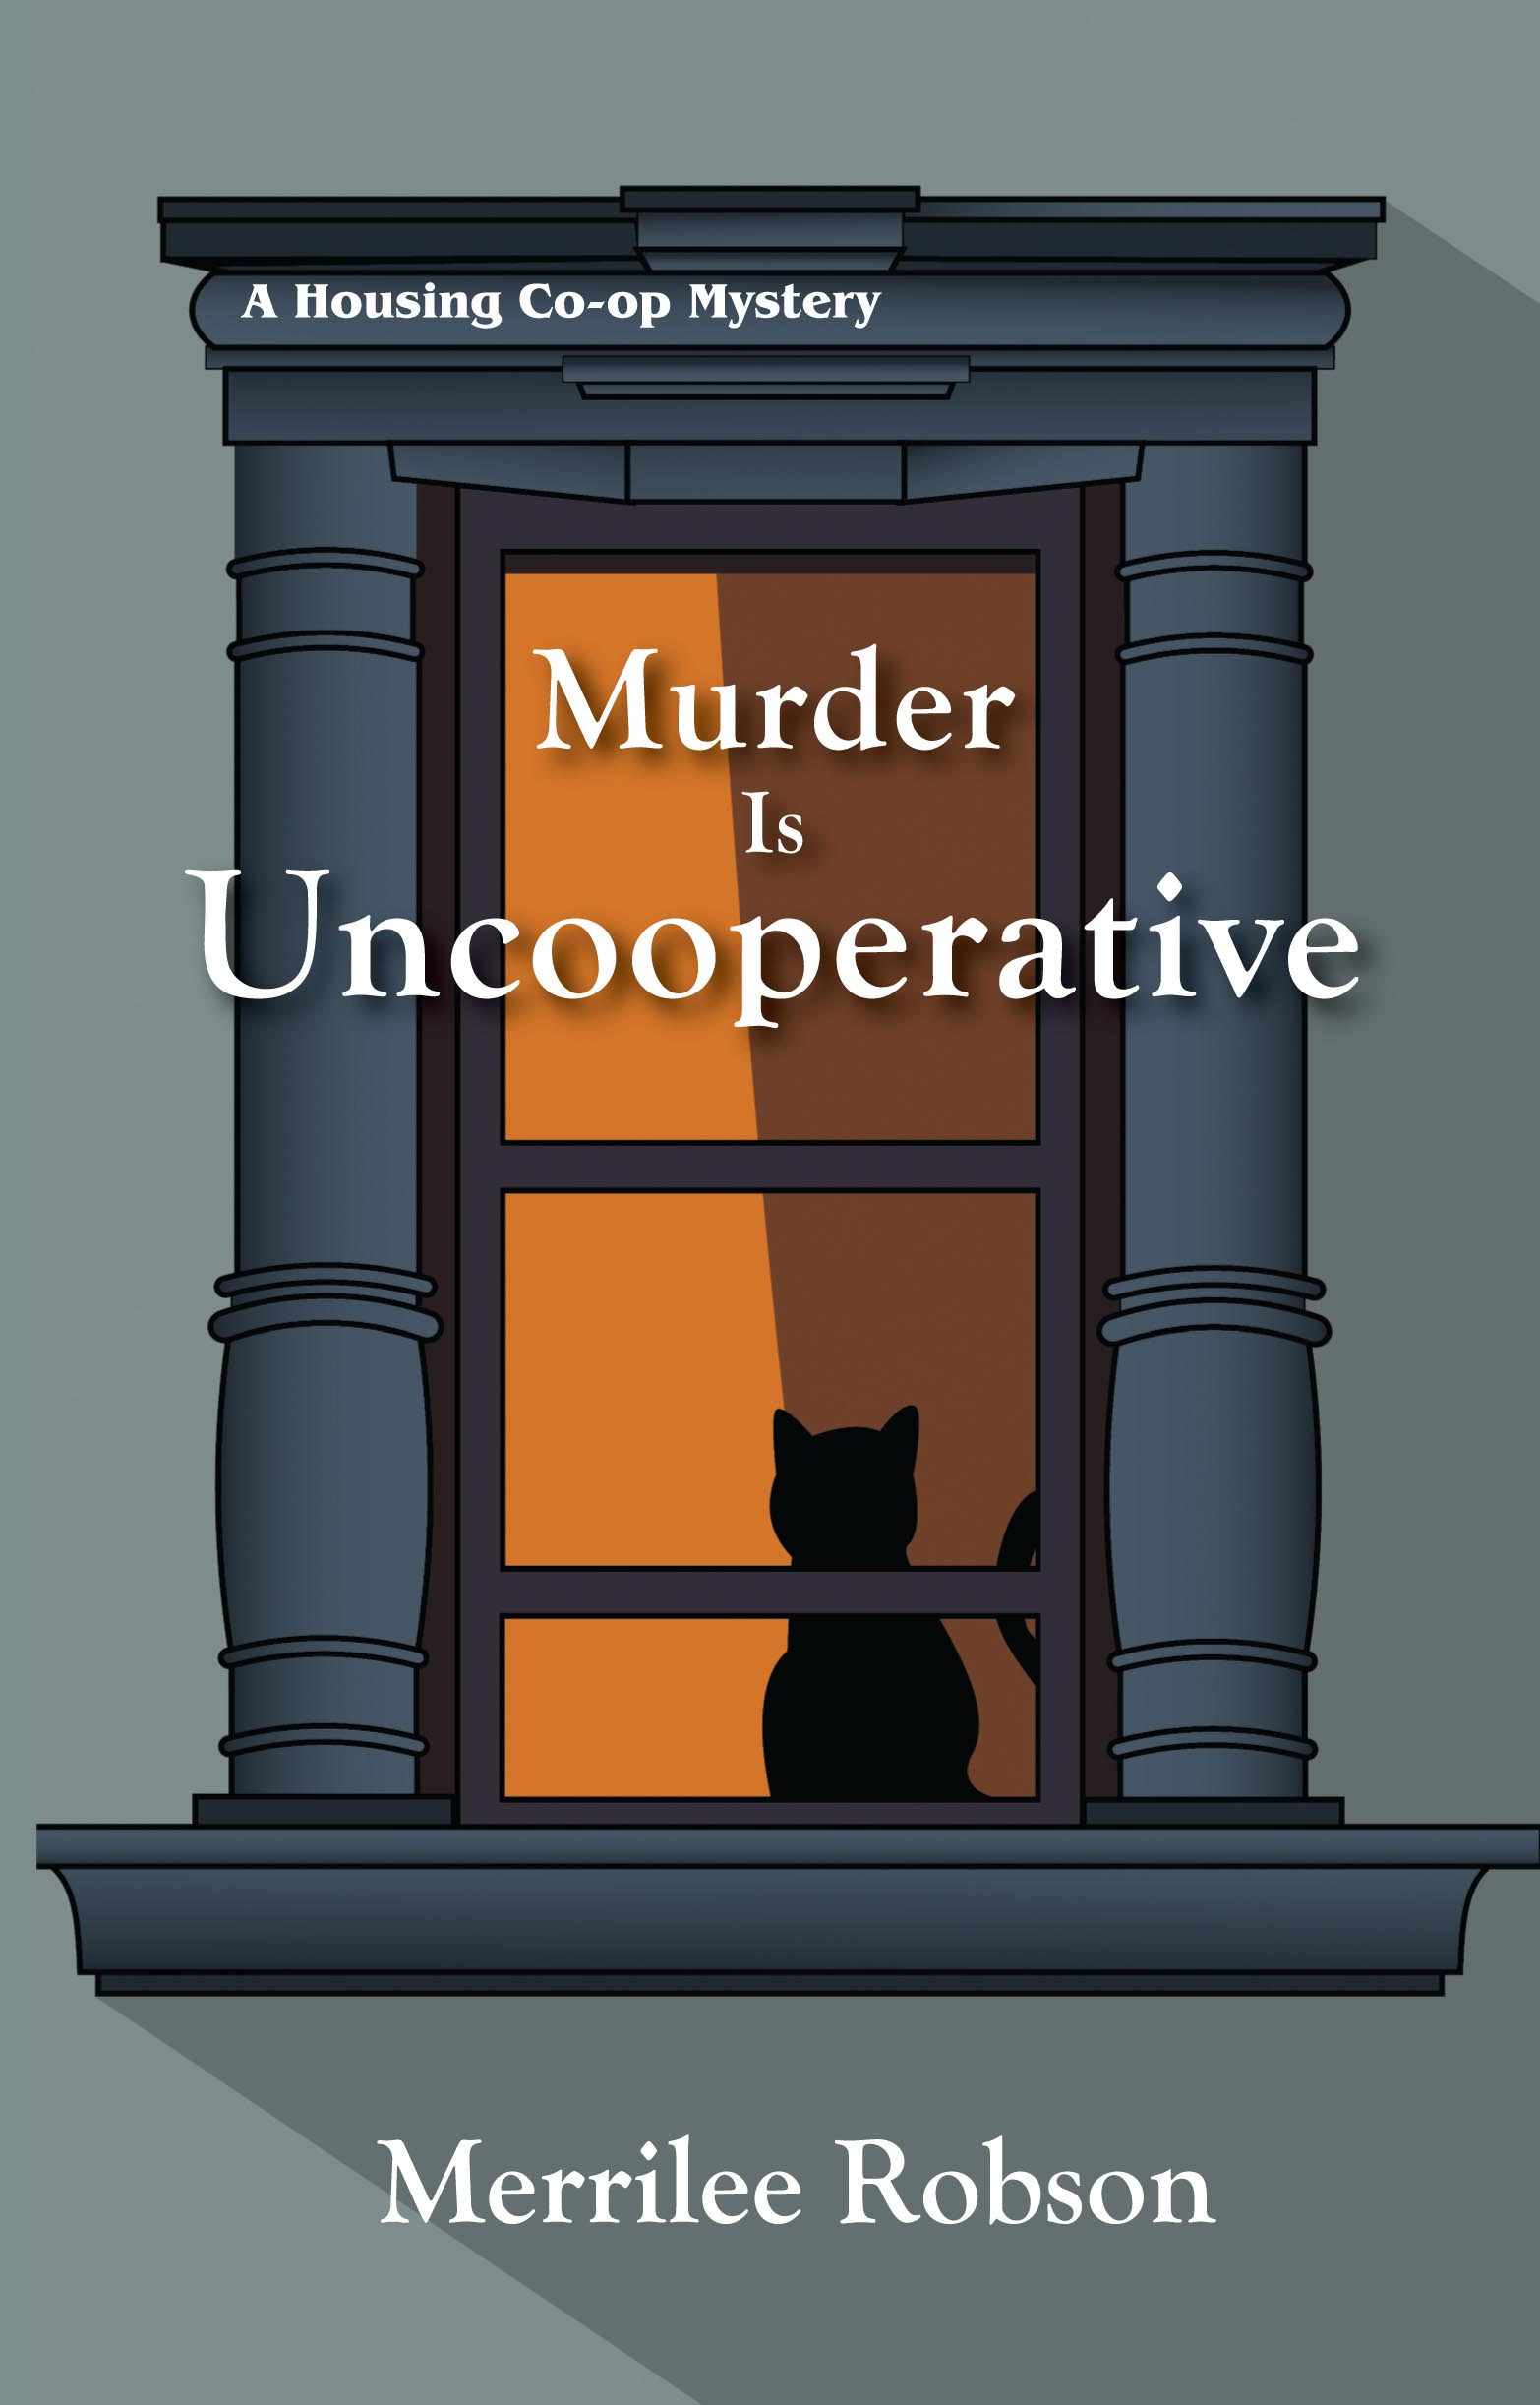 Murder is Uncooperative - Book Detail - Midpoint Book Sales